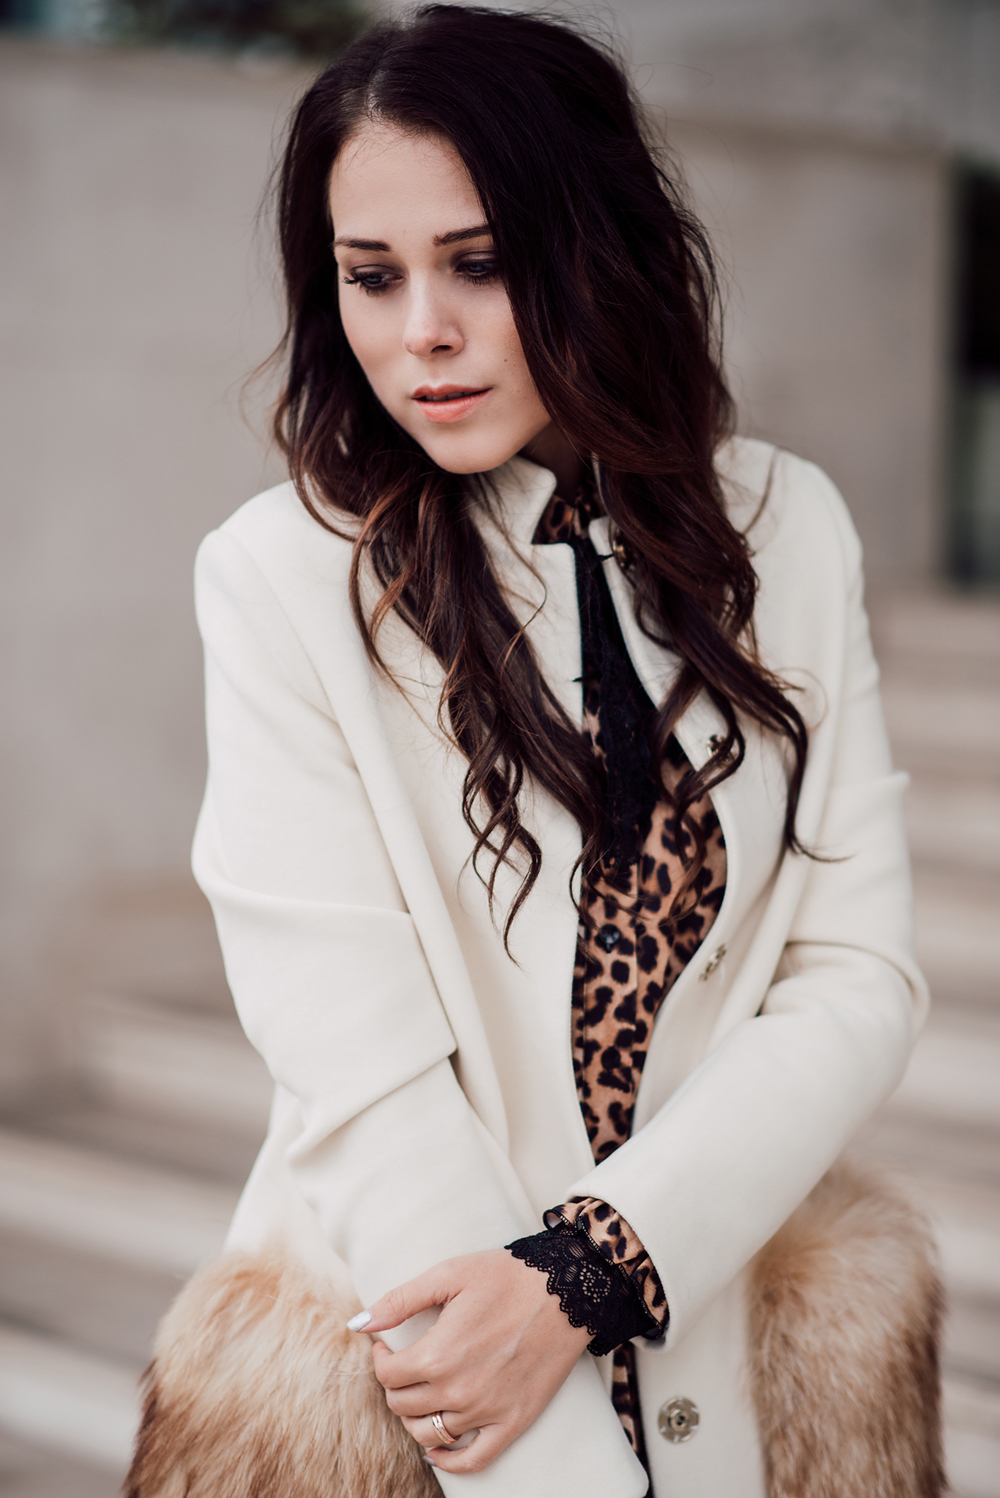 eva-ahacevcic_love-eva_terminal3_ootd_leopard-print_dress_fashion-blogger-9